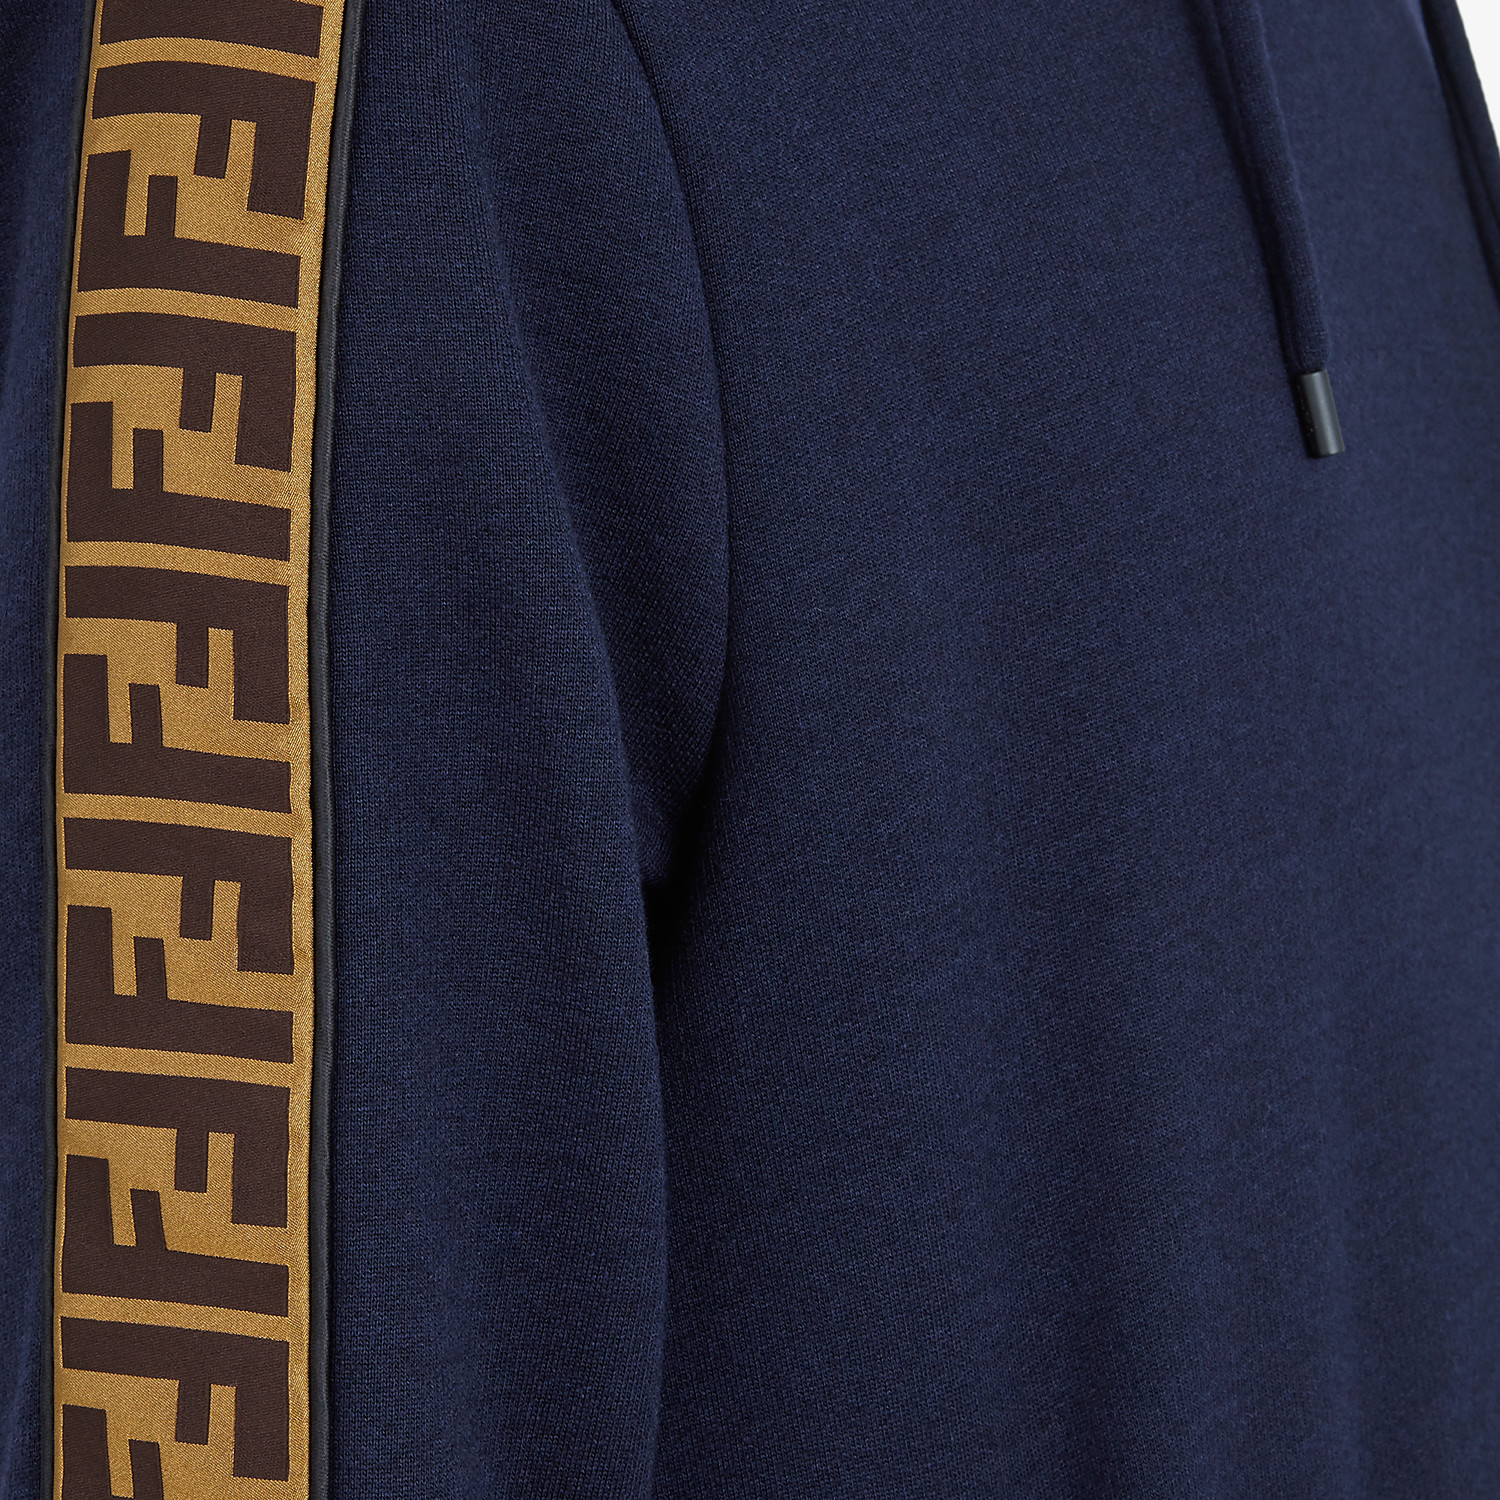 FENDI SWEATSHIRT - Blue wool and cotton sweatshirt - view 3 detail